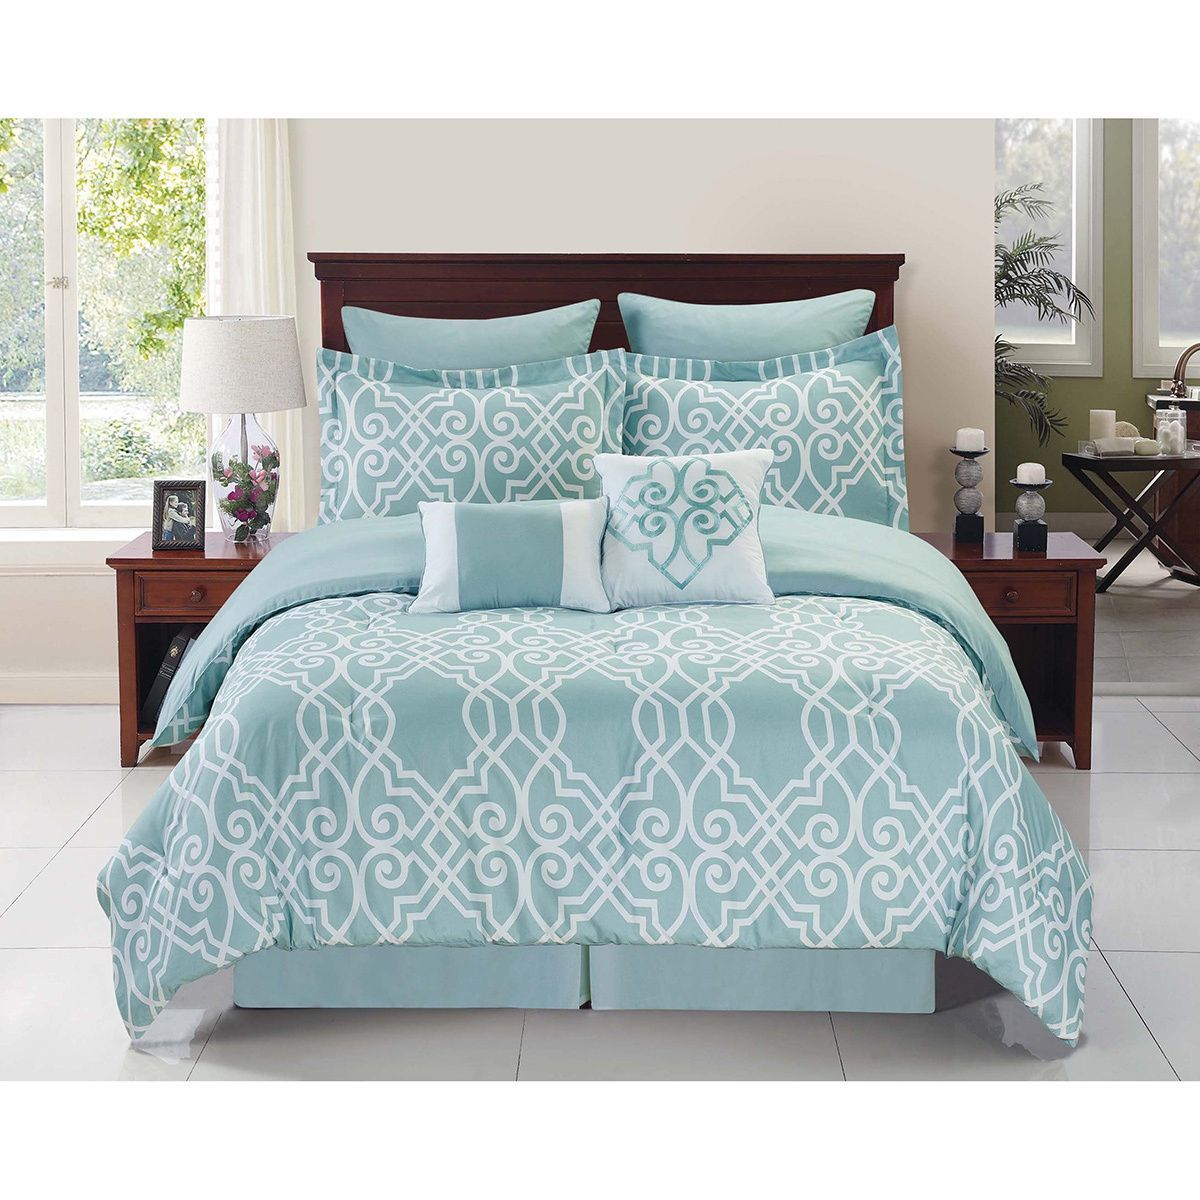 An elegant ironwork pattern makes the Dawson comforter set a graceful addition to your space. Crafted with a beautiful blue and white color scheme, this microfiber bedding is perfect for the guest room or the master bedroom.